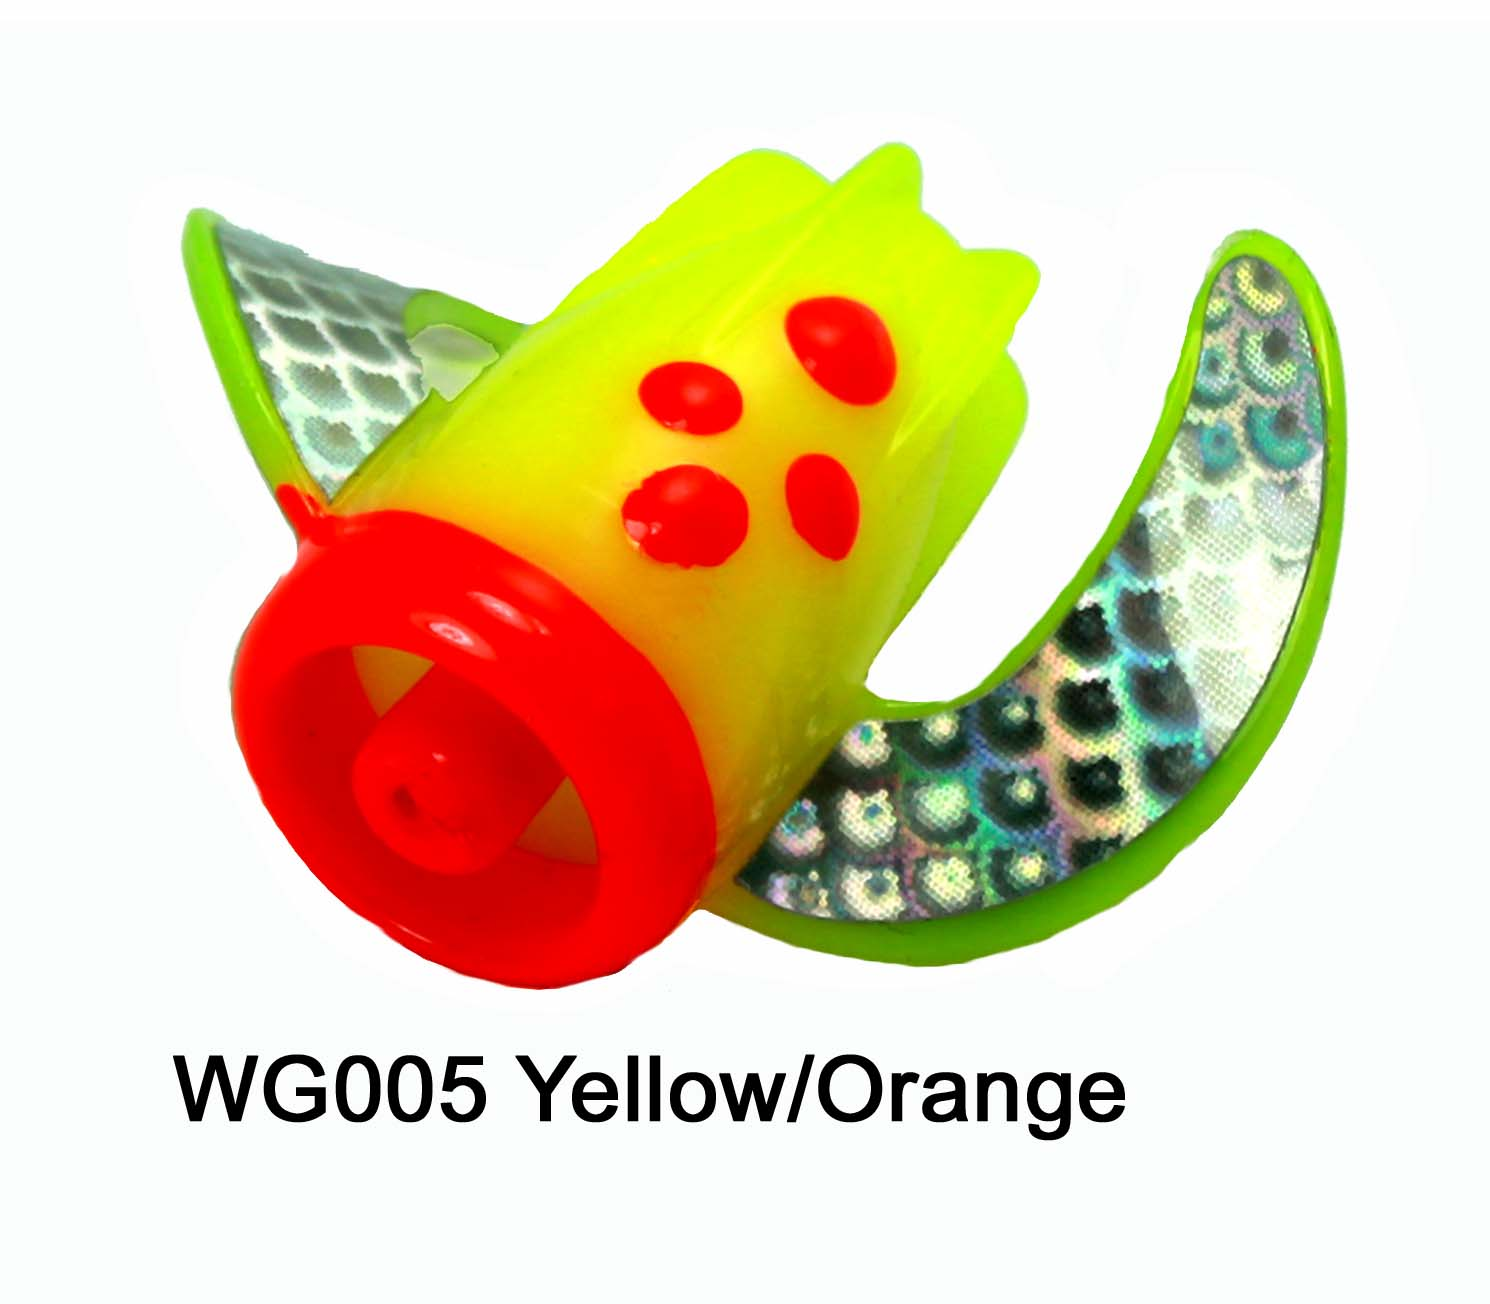 WG005 WhirlyGig Yellow/Orange